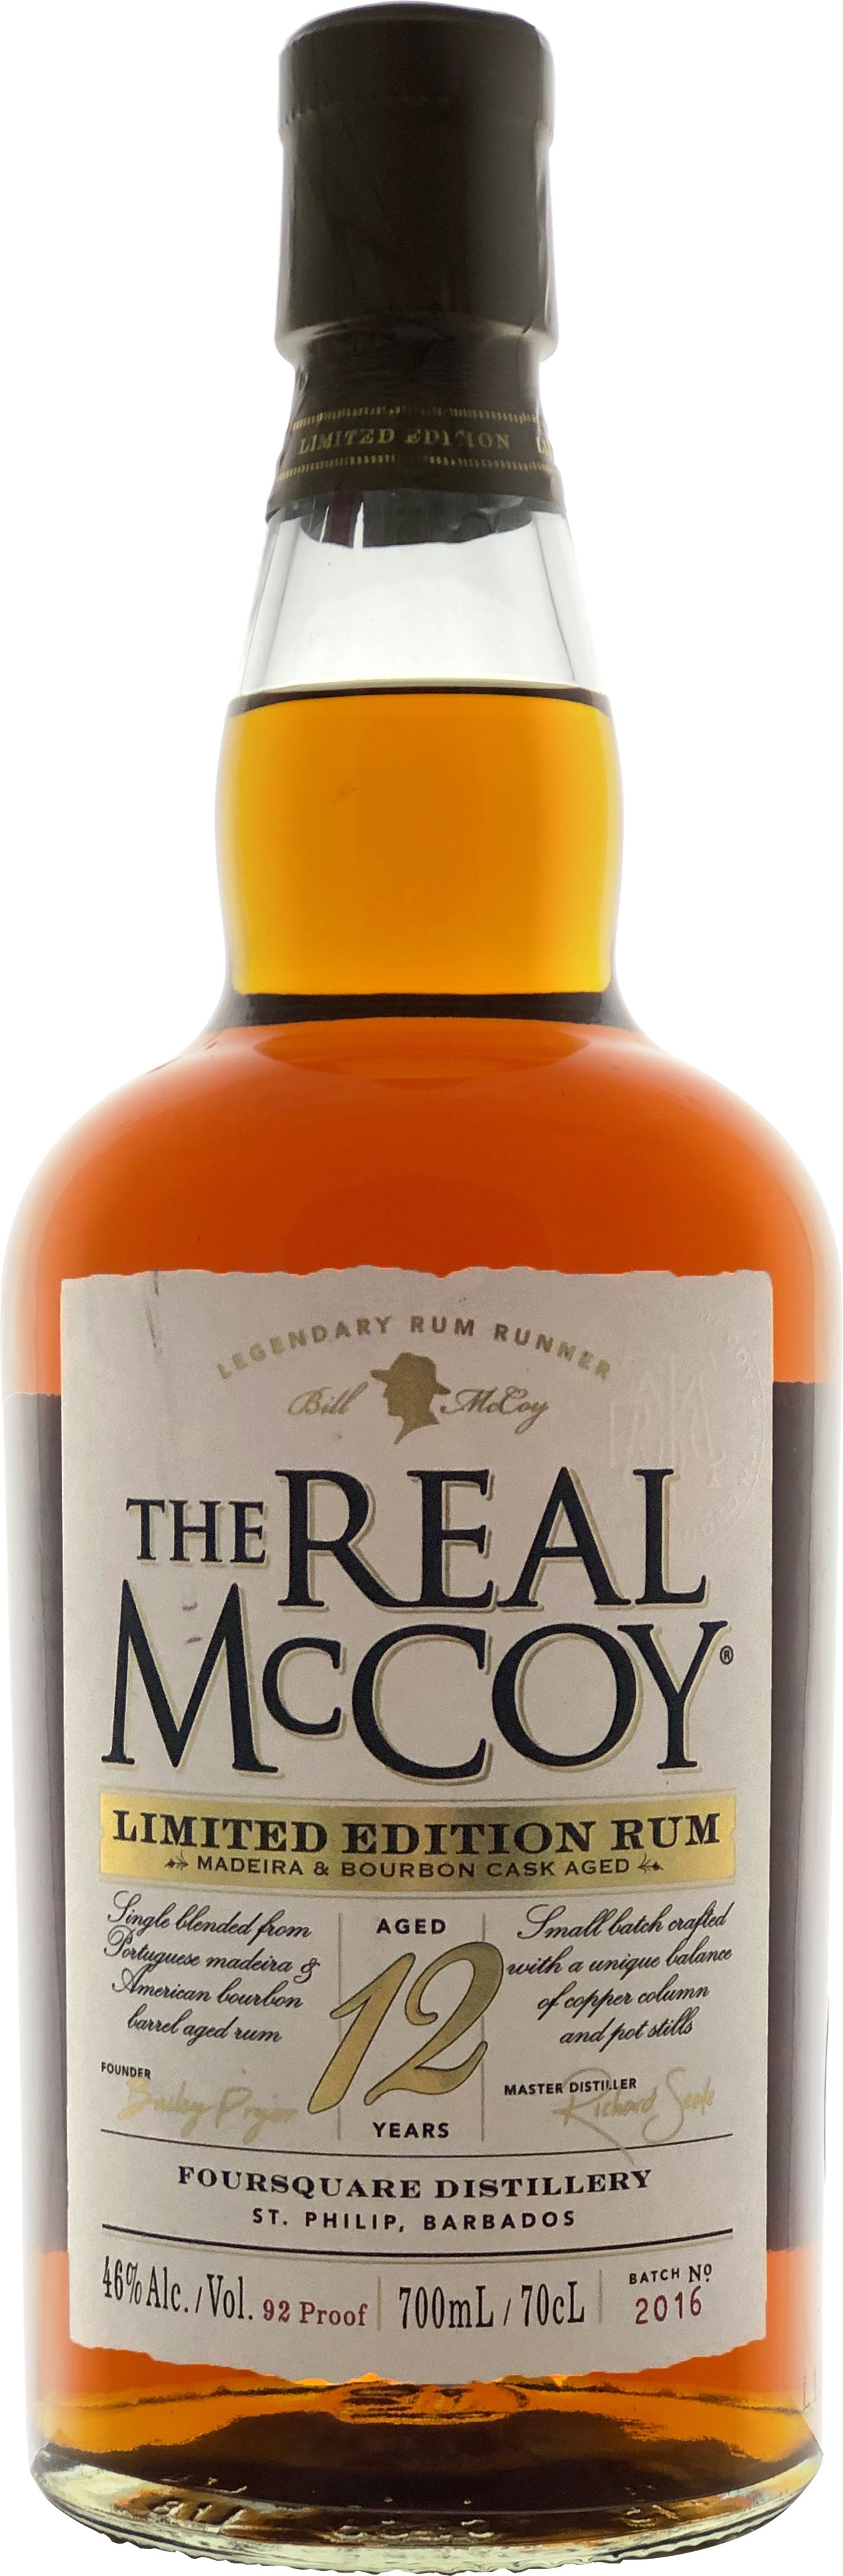 The Real McCoy Rum - Limited Edition Madeira 12 Years Old 70cl Bottle